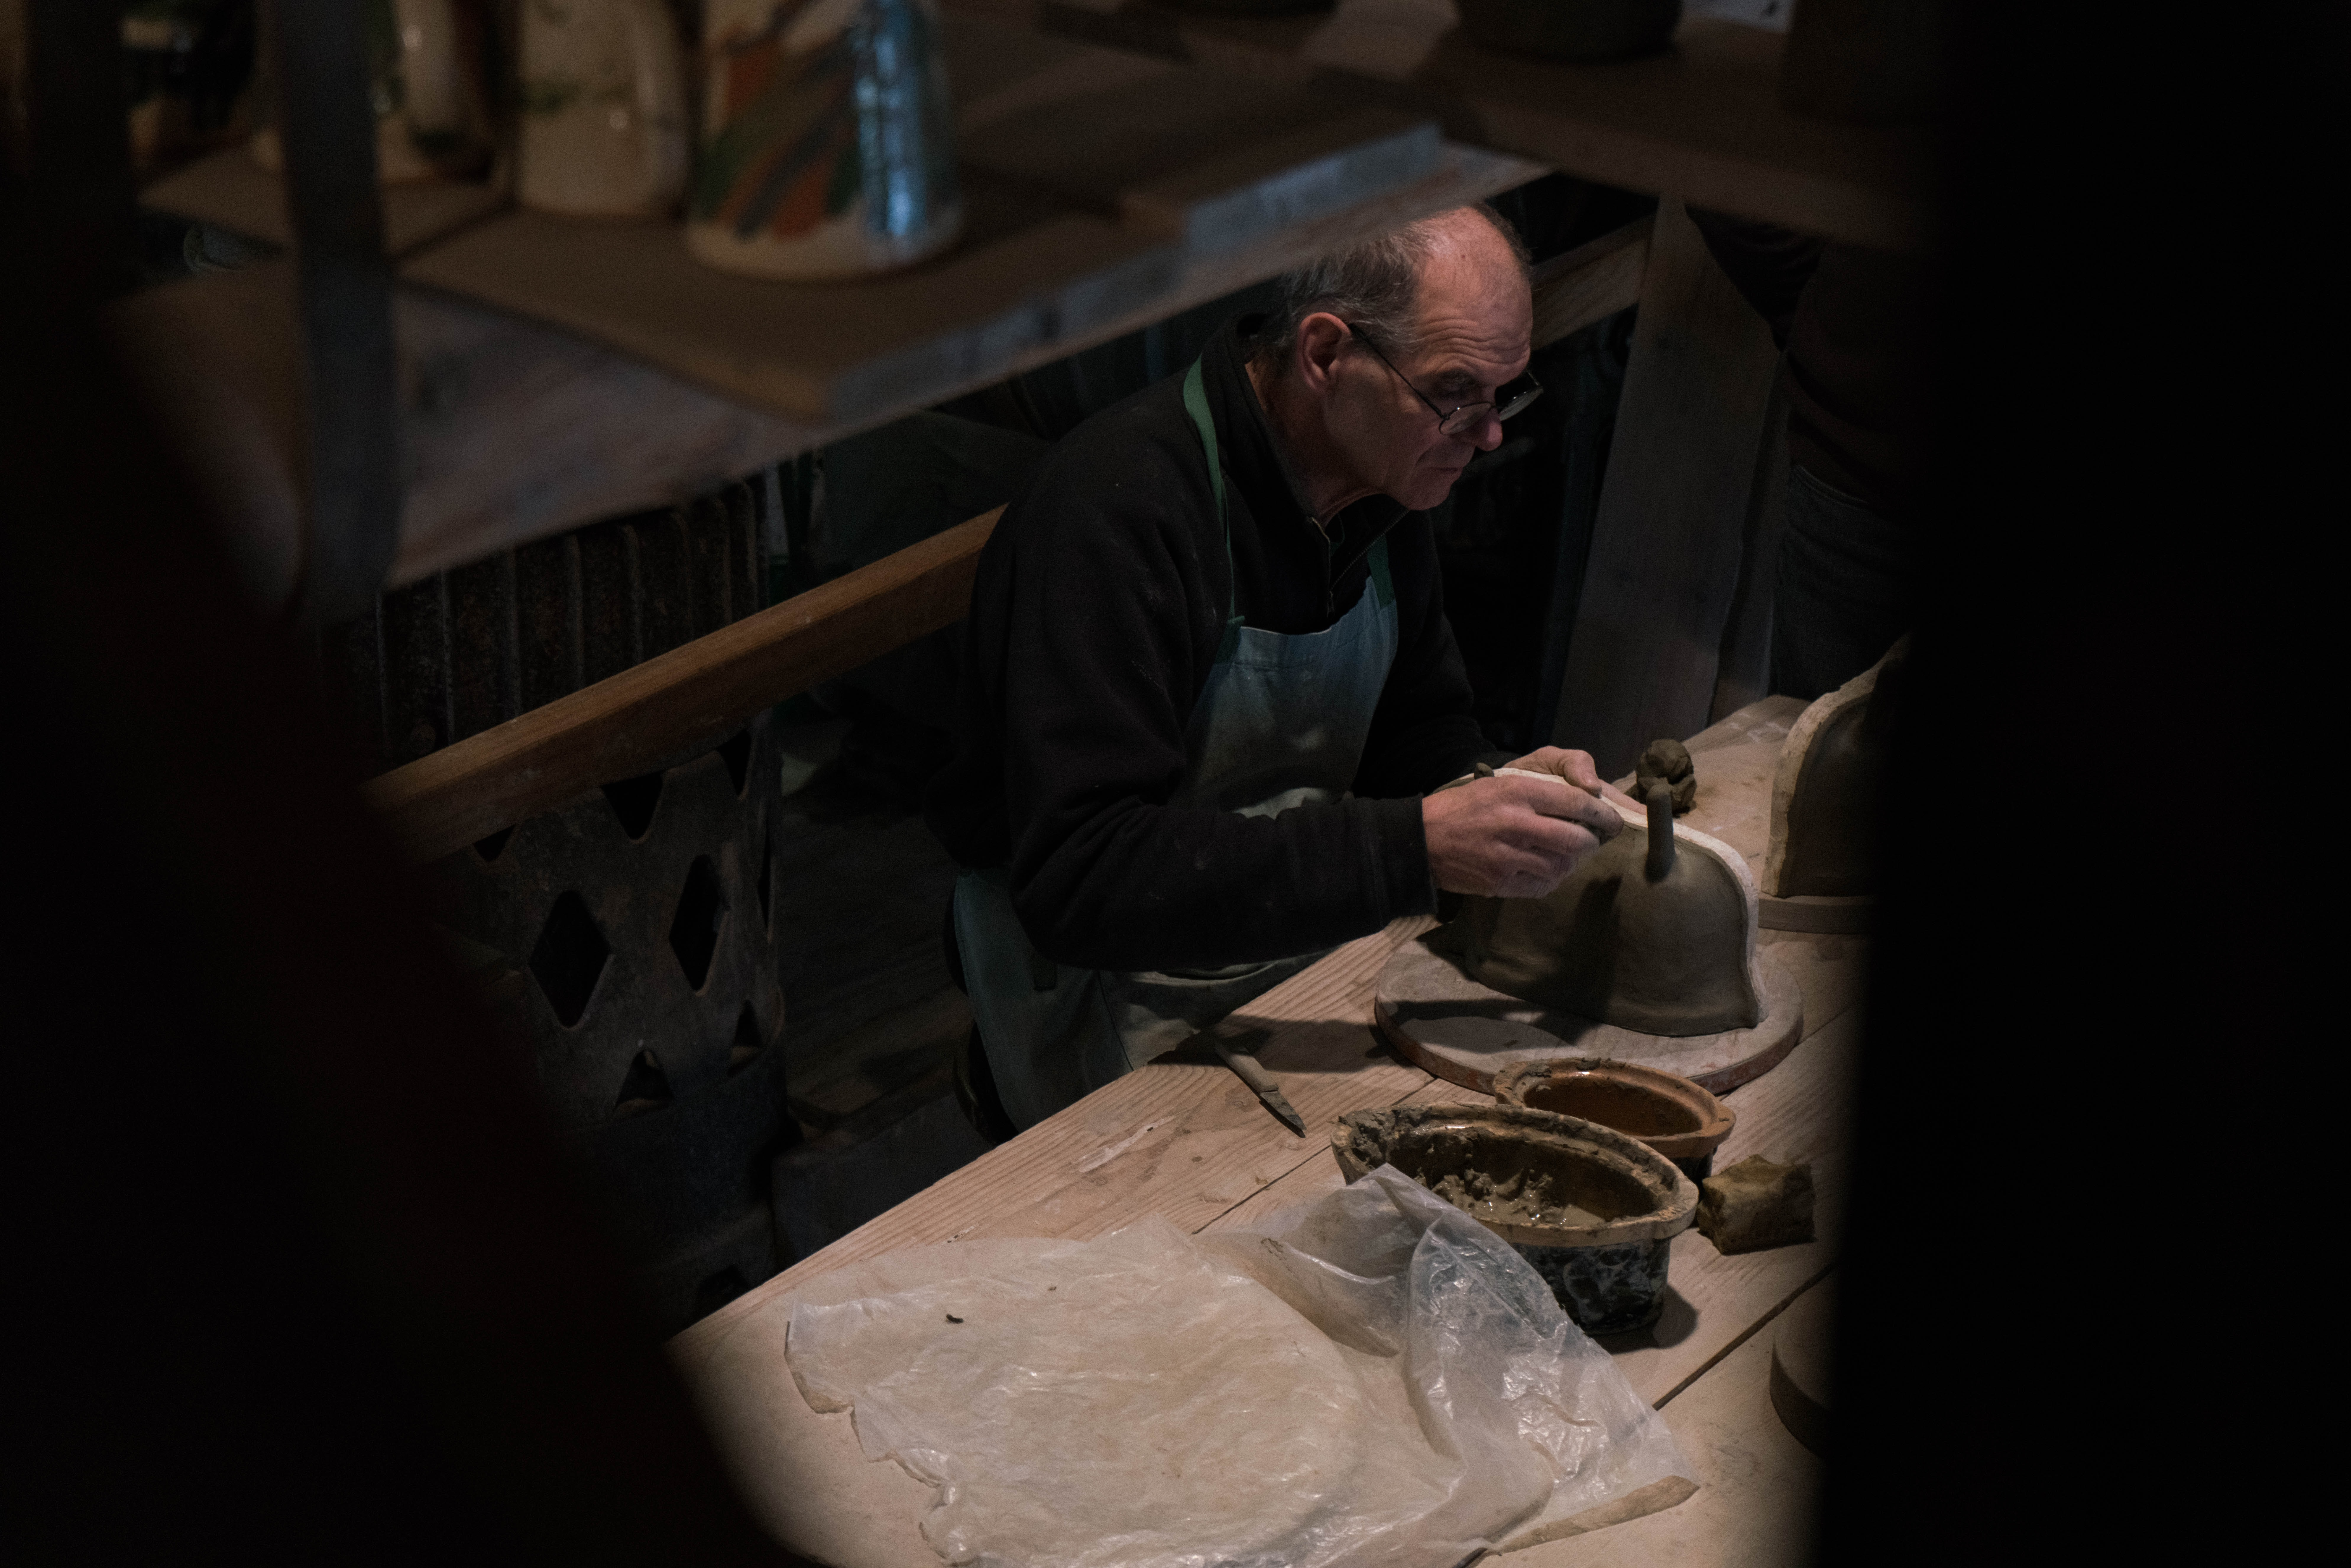 An elderly man working with clay and wood at a workbench